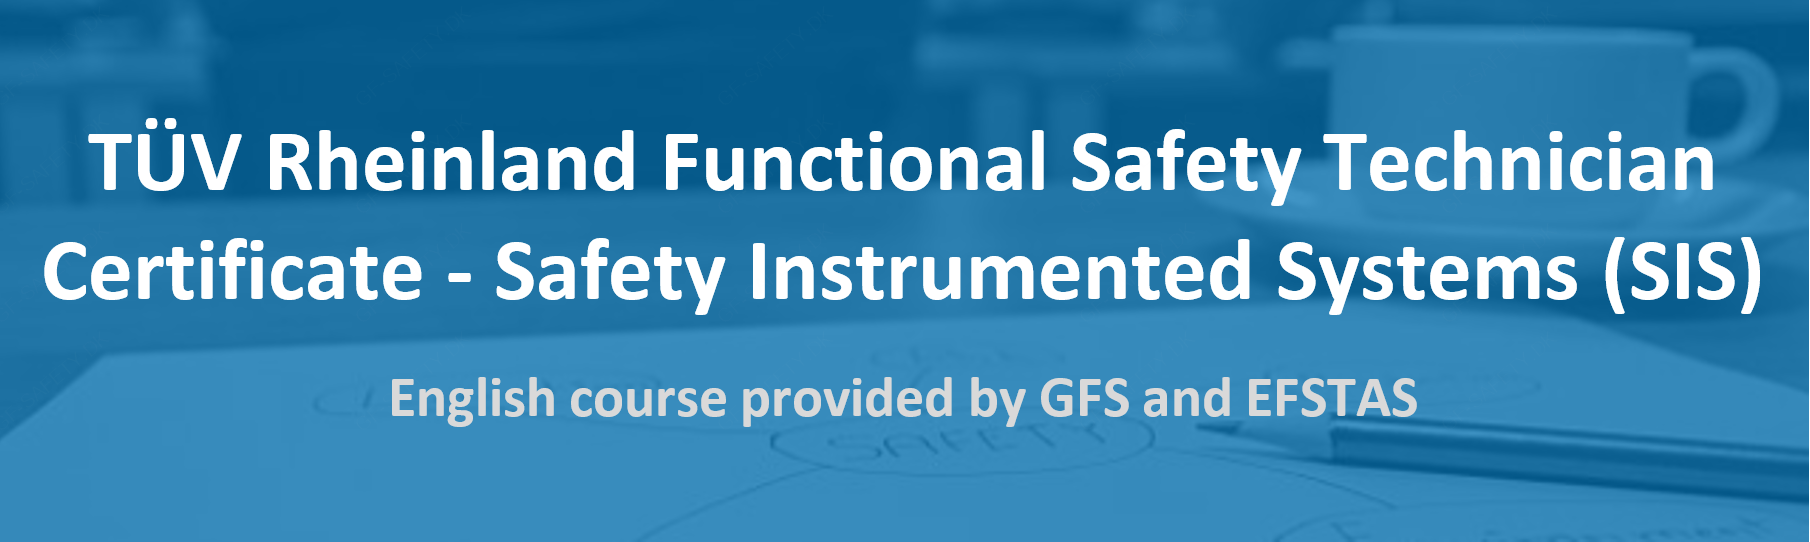 TÜV Rheinland Functional Safety Technician Certificate - Safety Instrumented Systems (SIS)